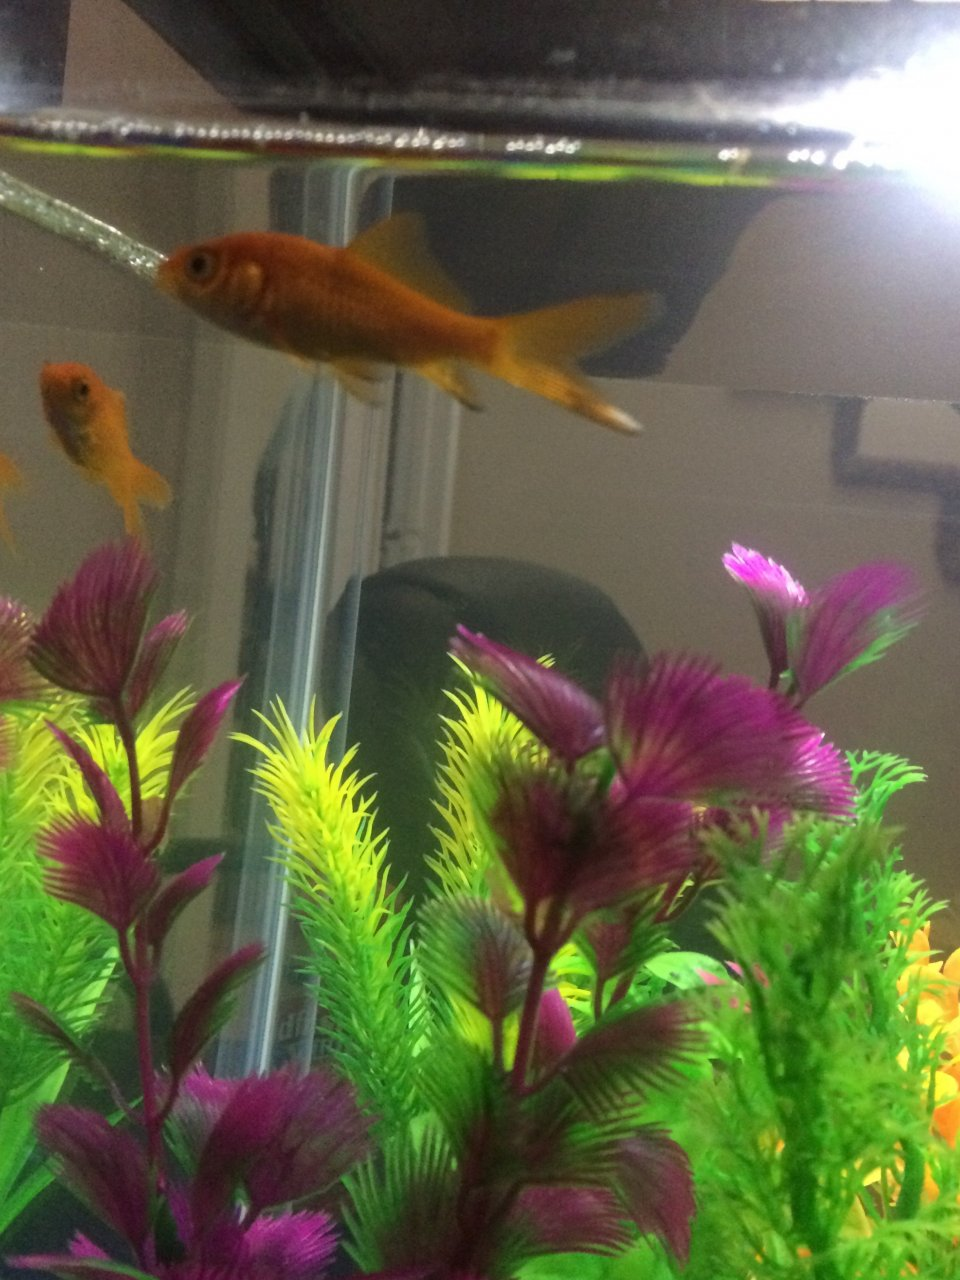 Ammonia Burns Or Changing Color/pigmentation *NEW FISH OWNER* | My ...